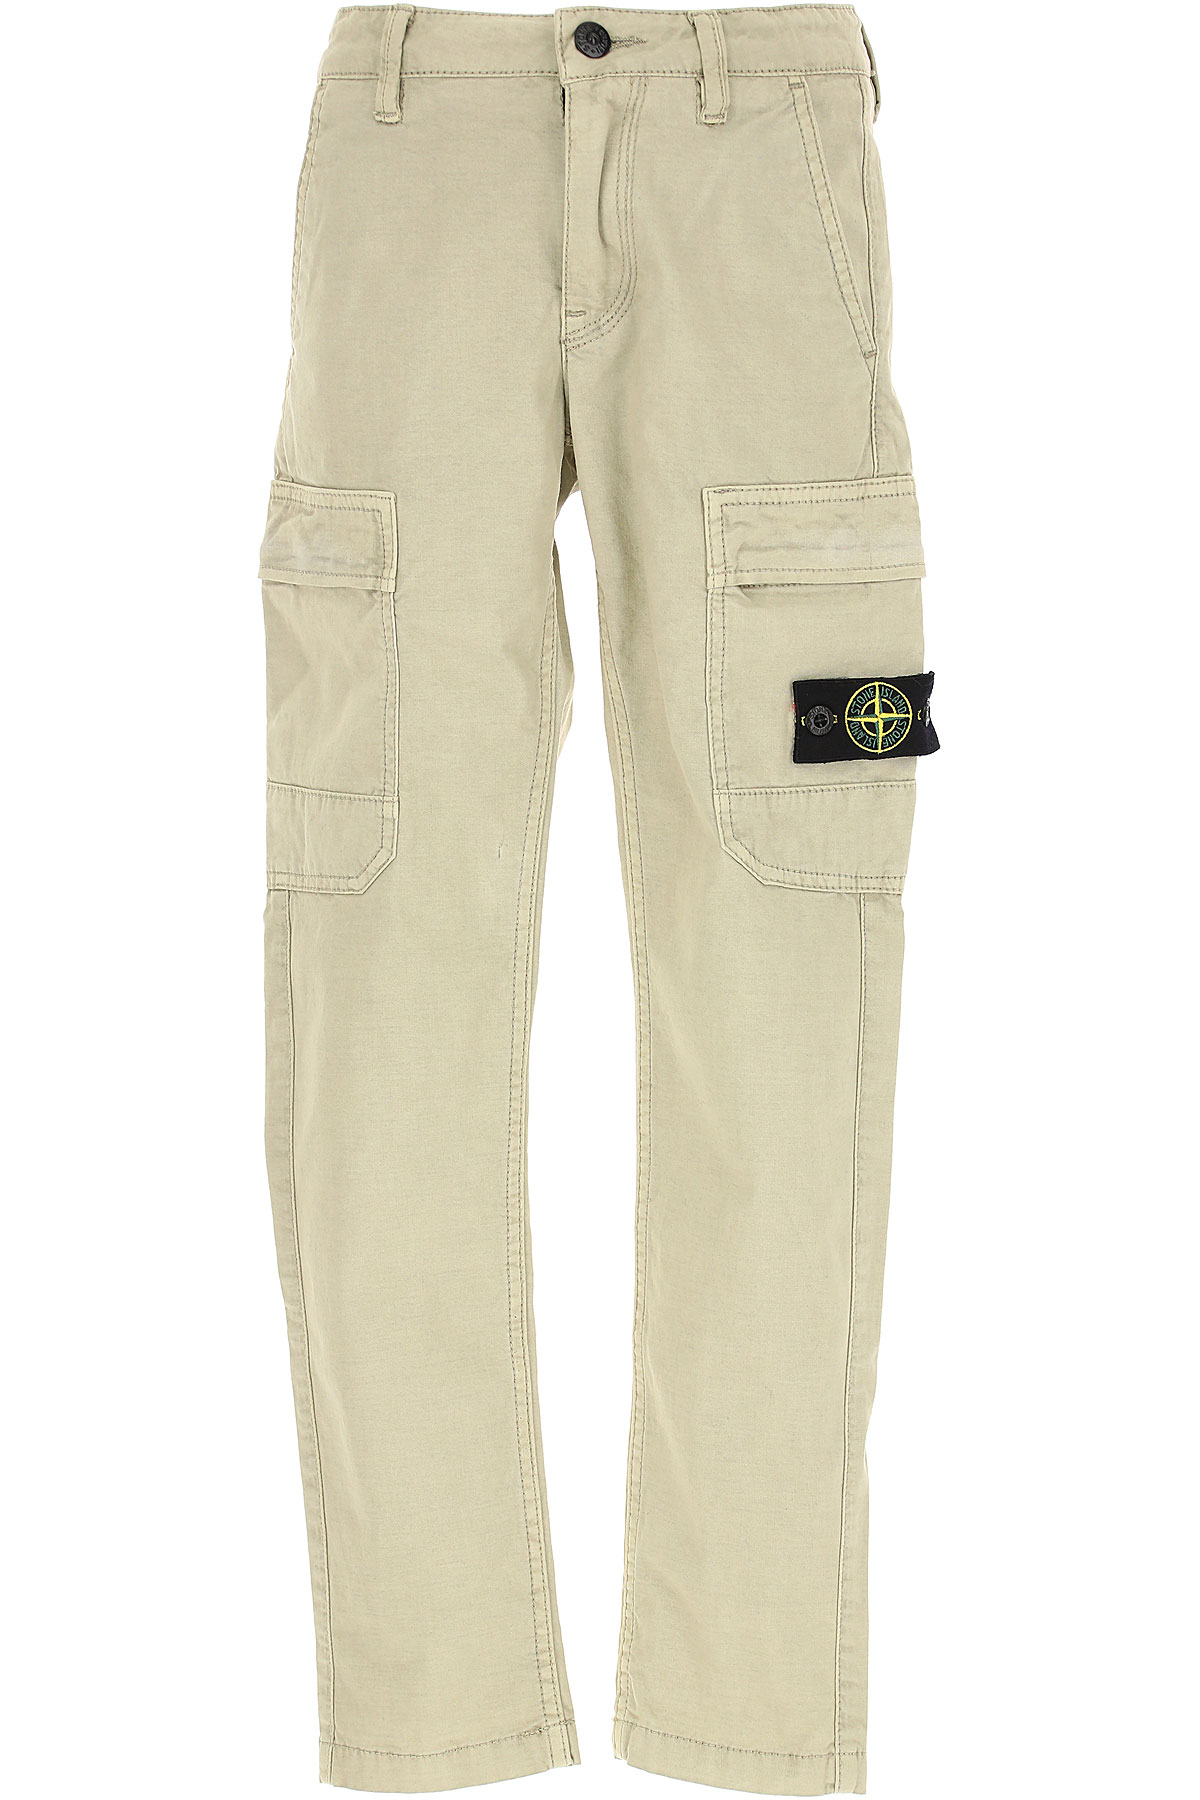 Stone Island Kids Pants for Boys On Sale in Outlet, Beige, Cotton, 2019, 4Y 5Y 6Y 8Y